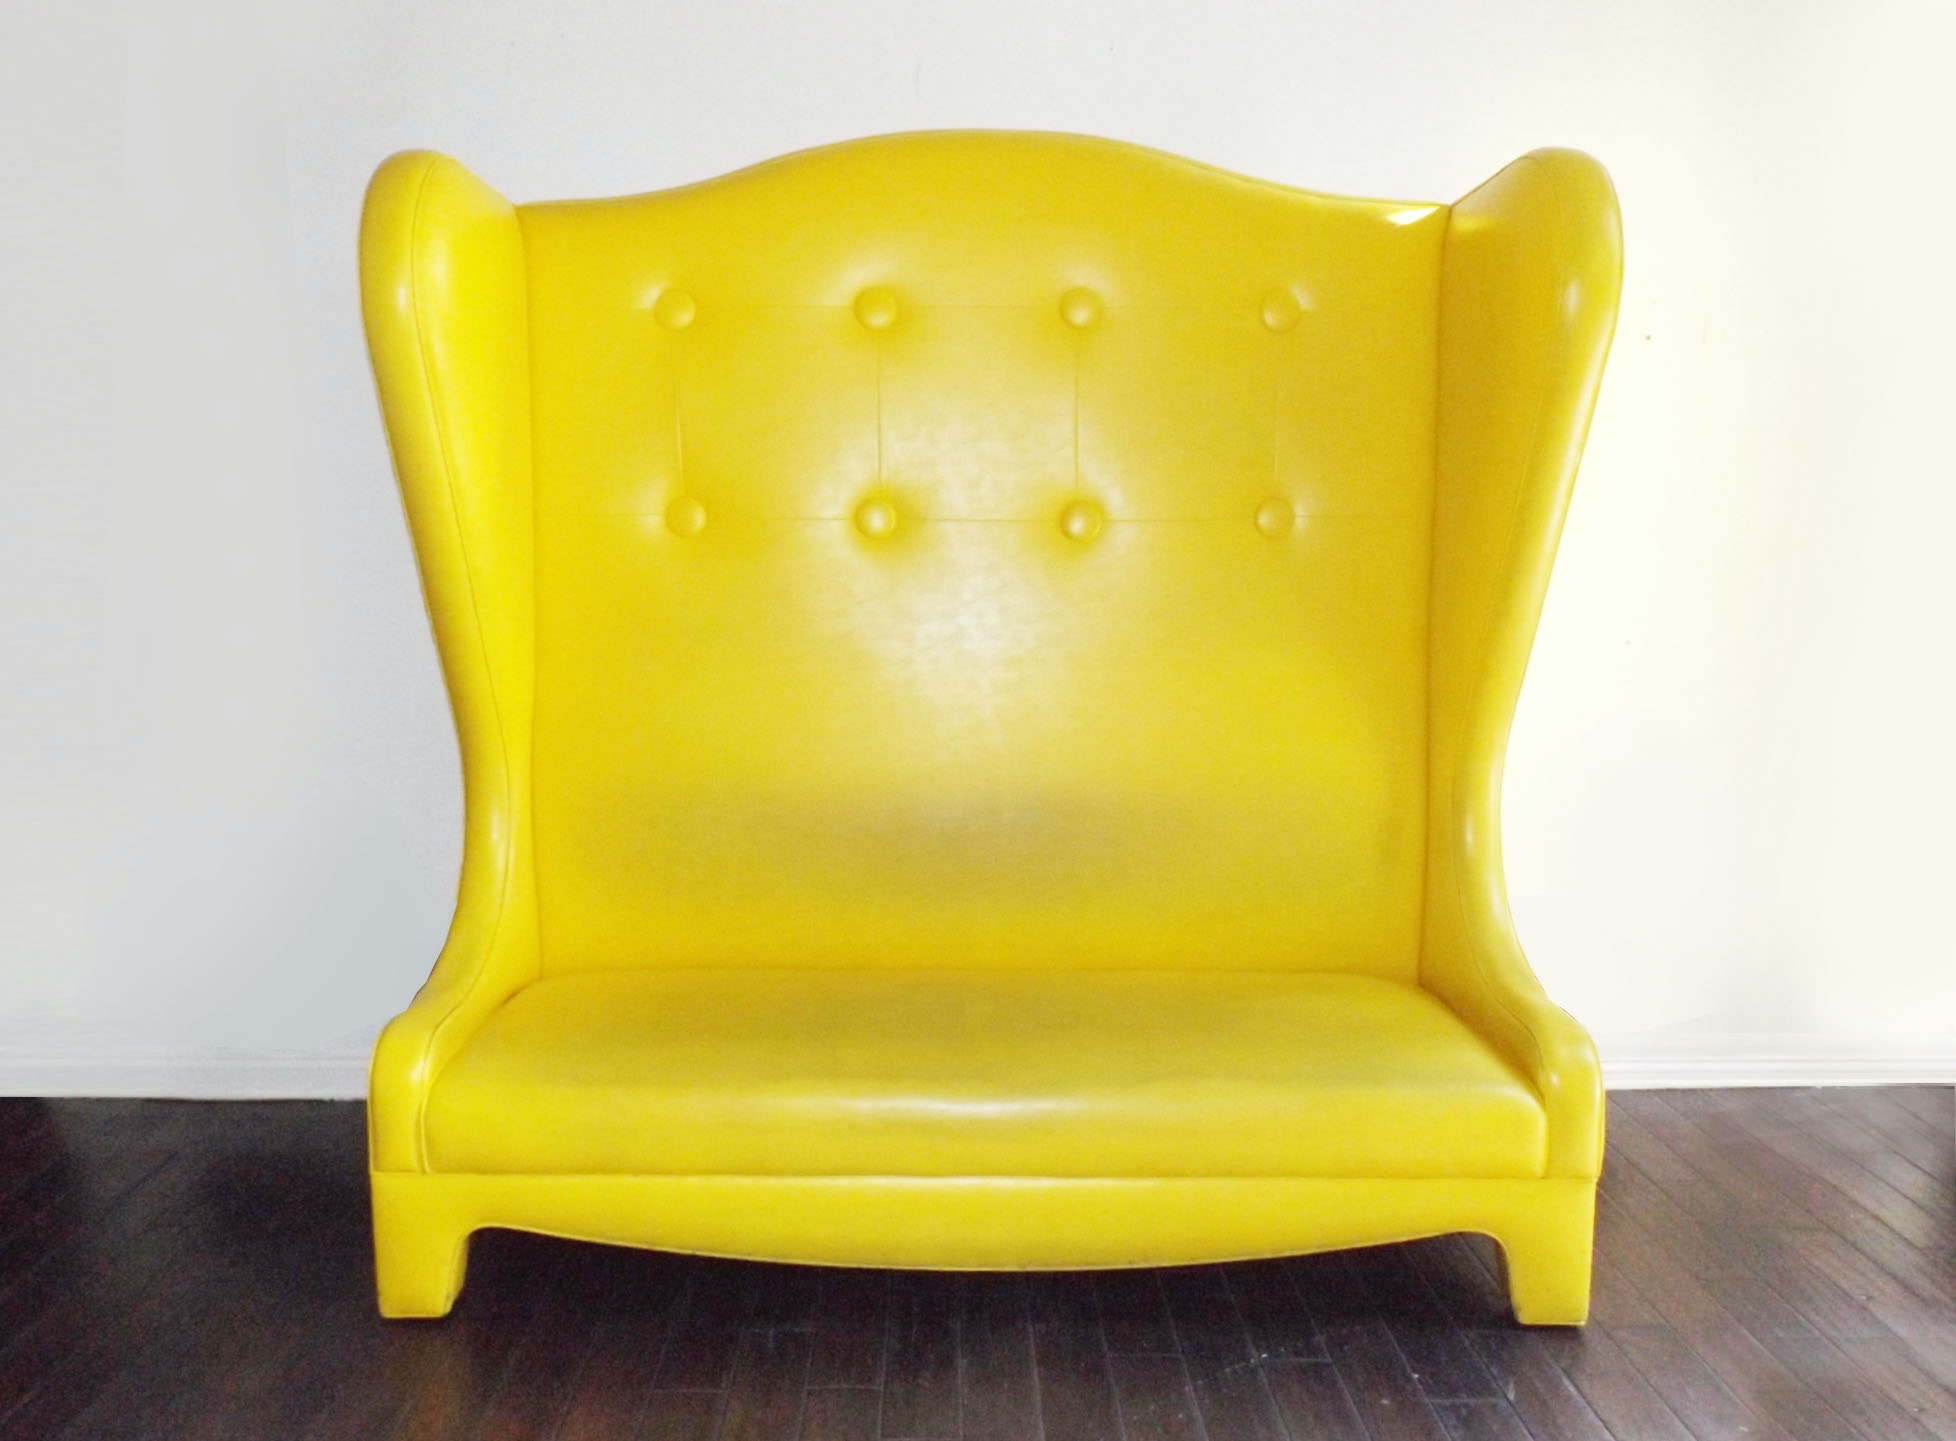 Fabulous Signature FB Yellow Vinyl Settee